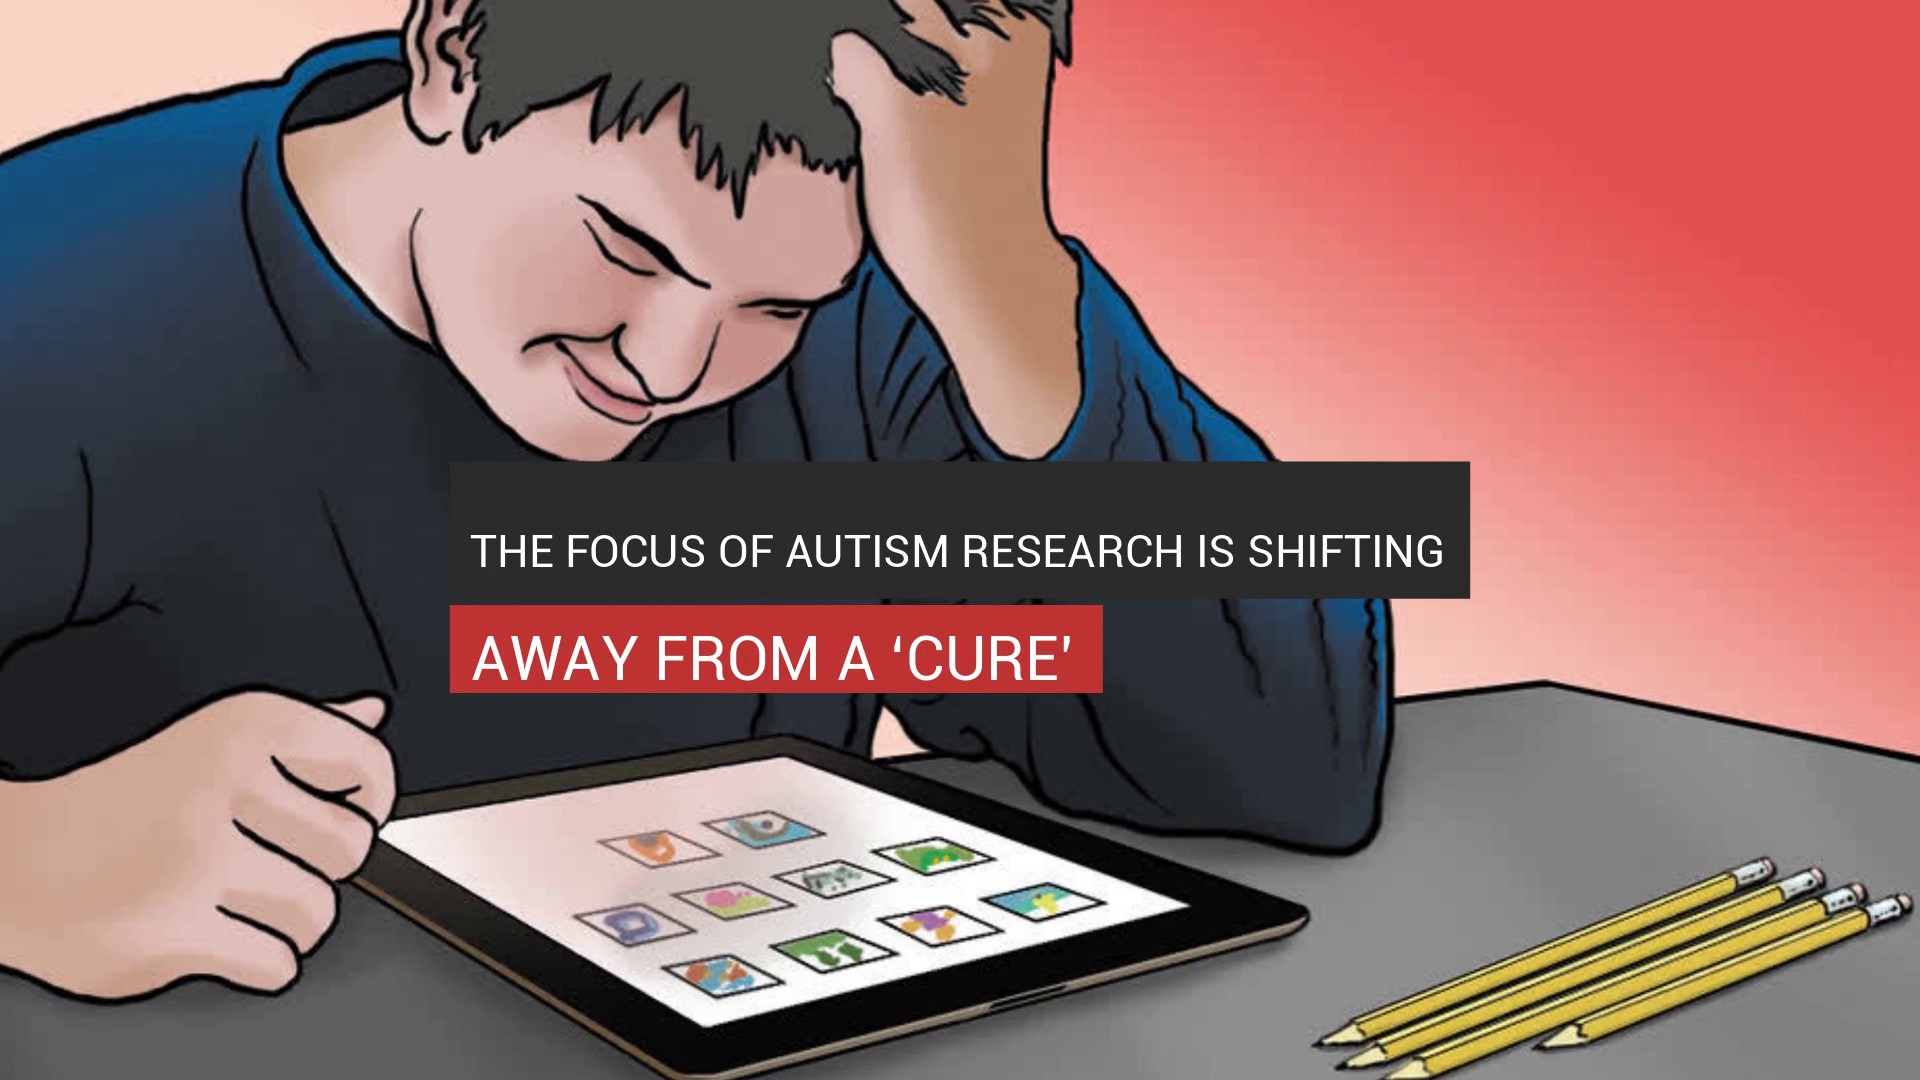 The Focus Of Autism Research Is Shifting